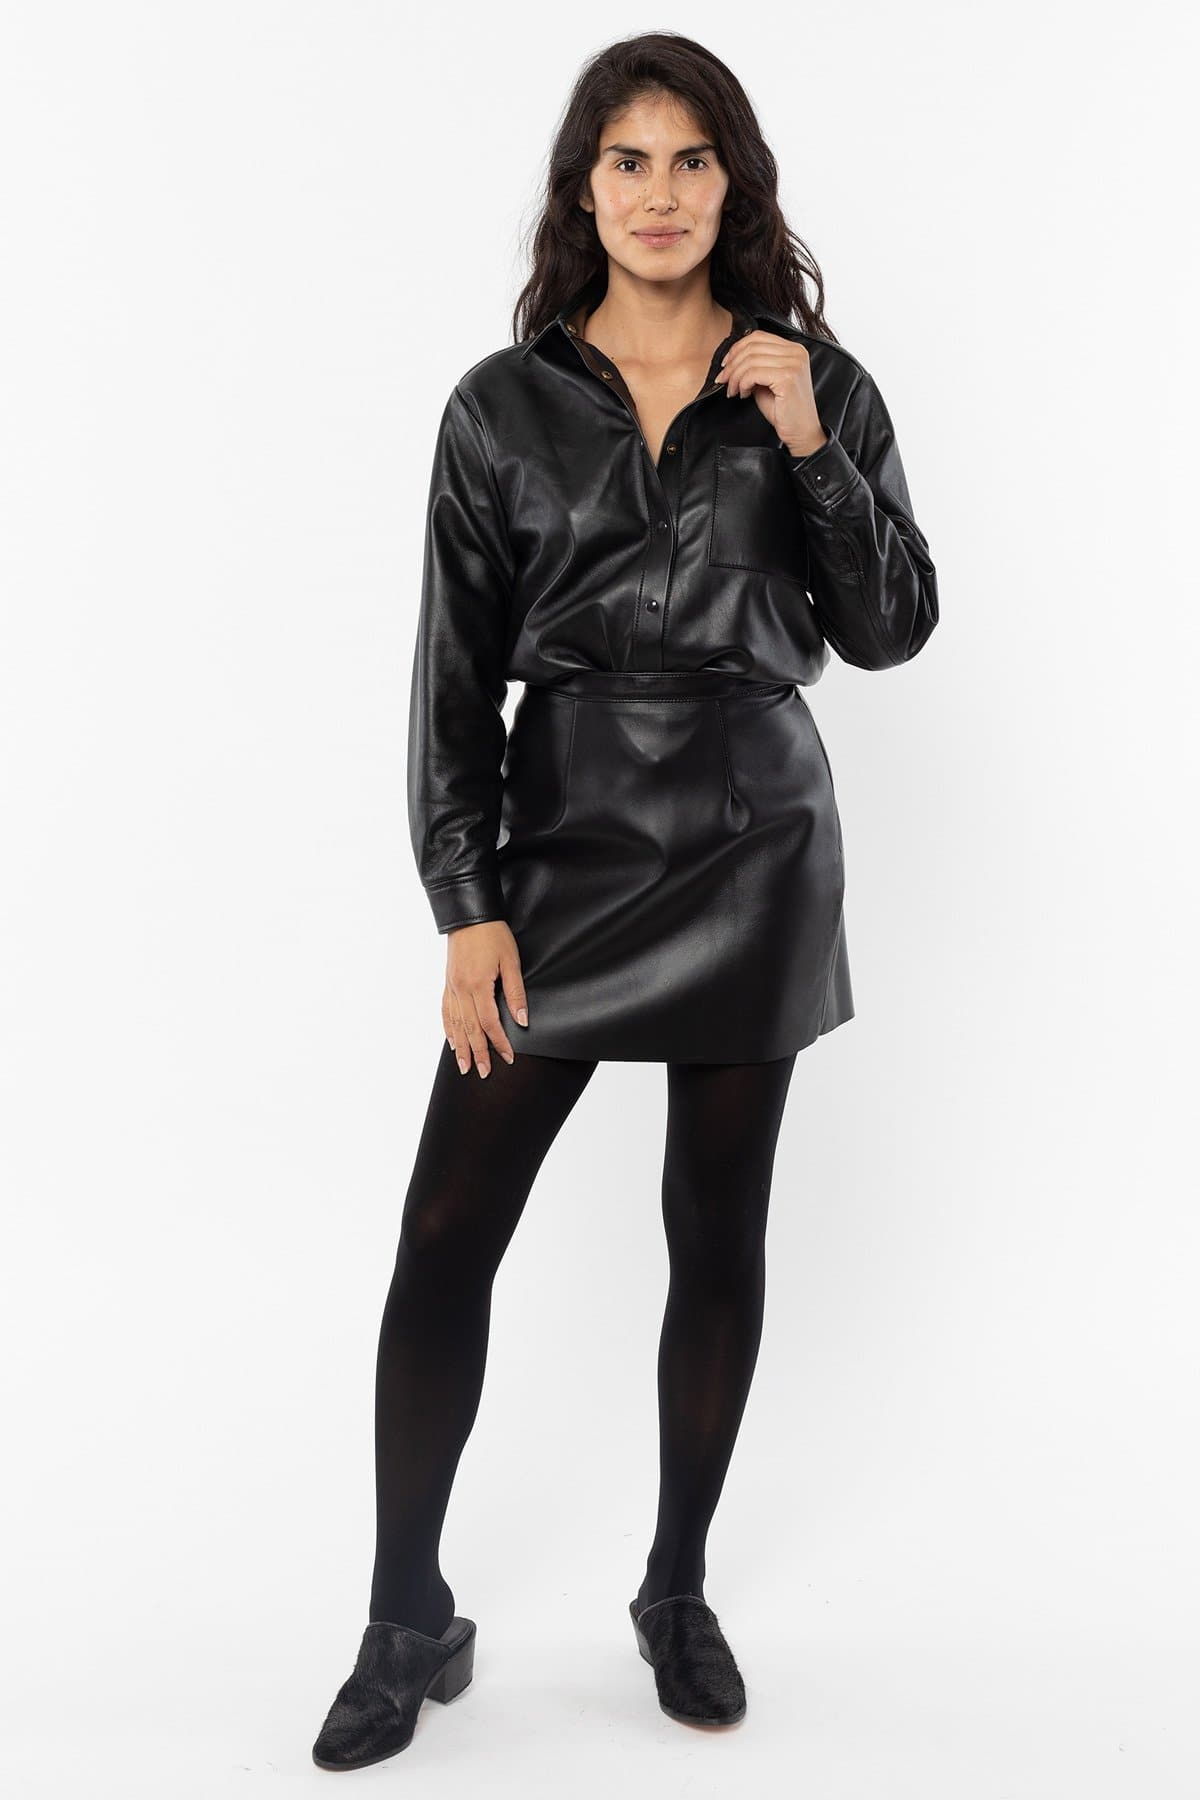 RLH3012 - Leather Mini Pencil Skirt